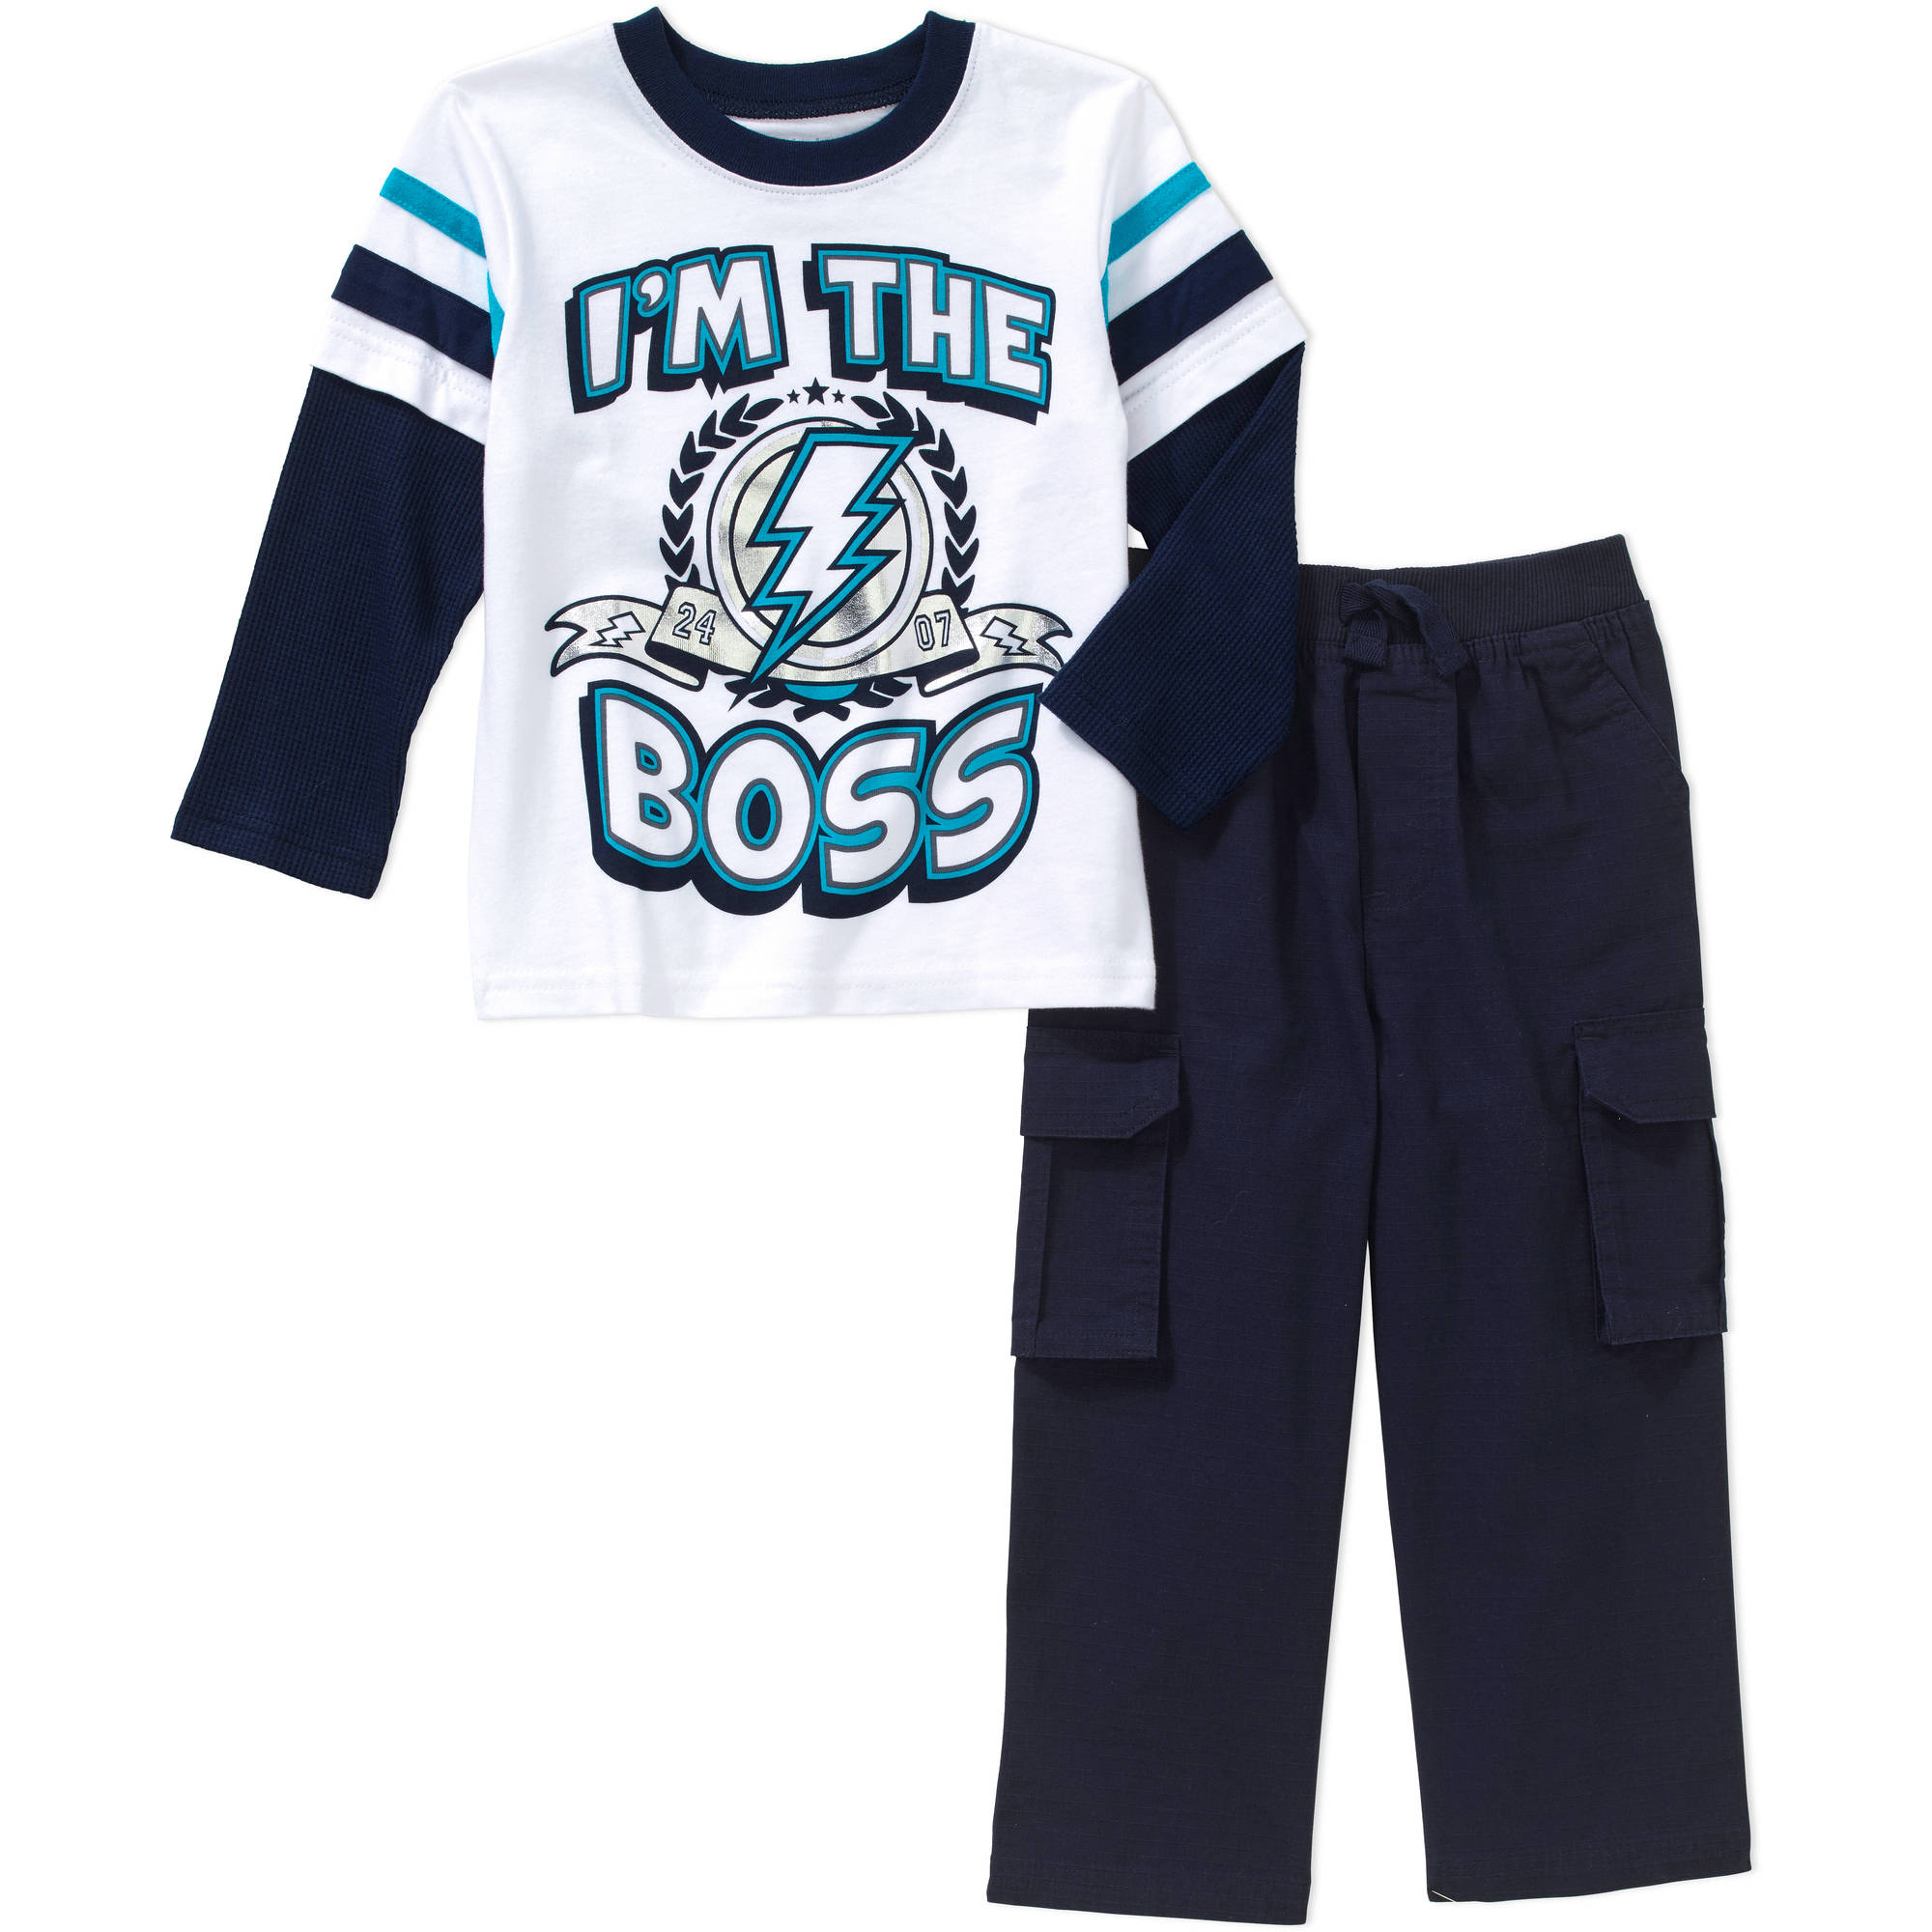 Garanimals Baby Toddler Boys' Long Sleeve Graphic Hangdown Tee and Cargo Pants 2-Piece Outfit Set